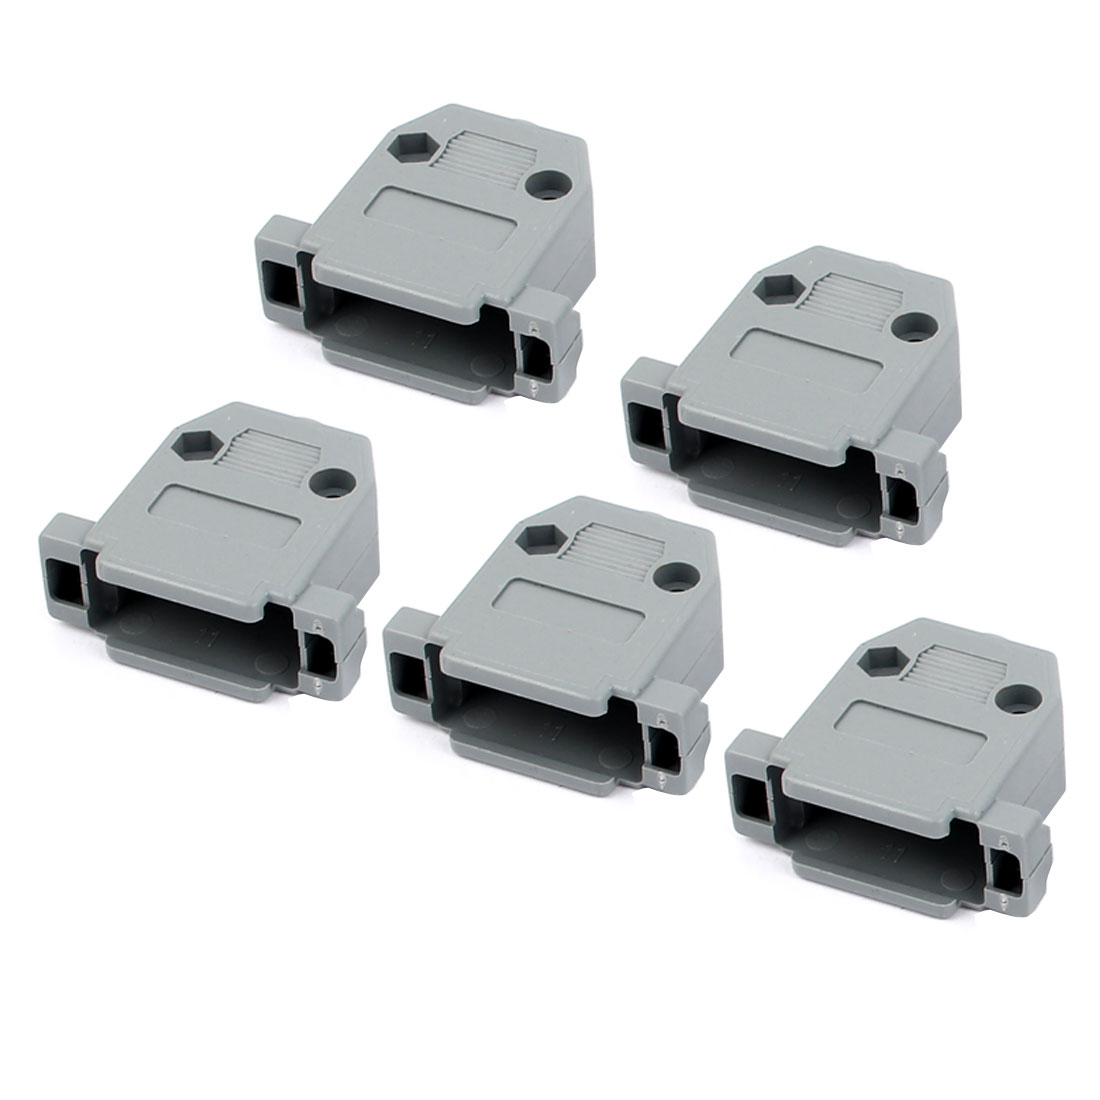 5 Pcs Serial Port D-Sub DB15 Connector Kit Gray Plastic Hoods Shell w Screws